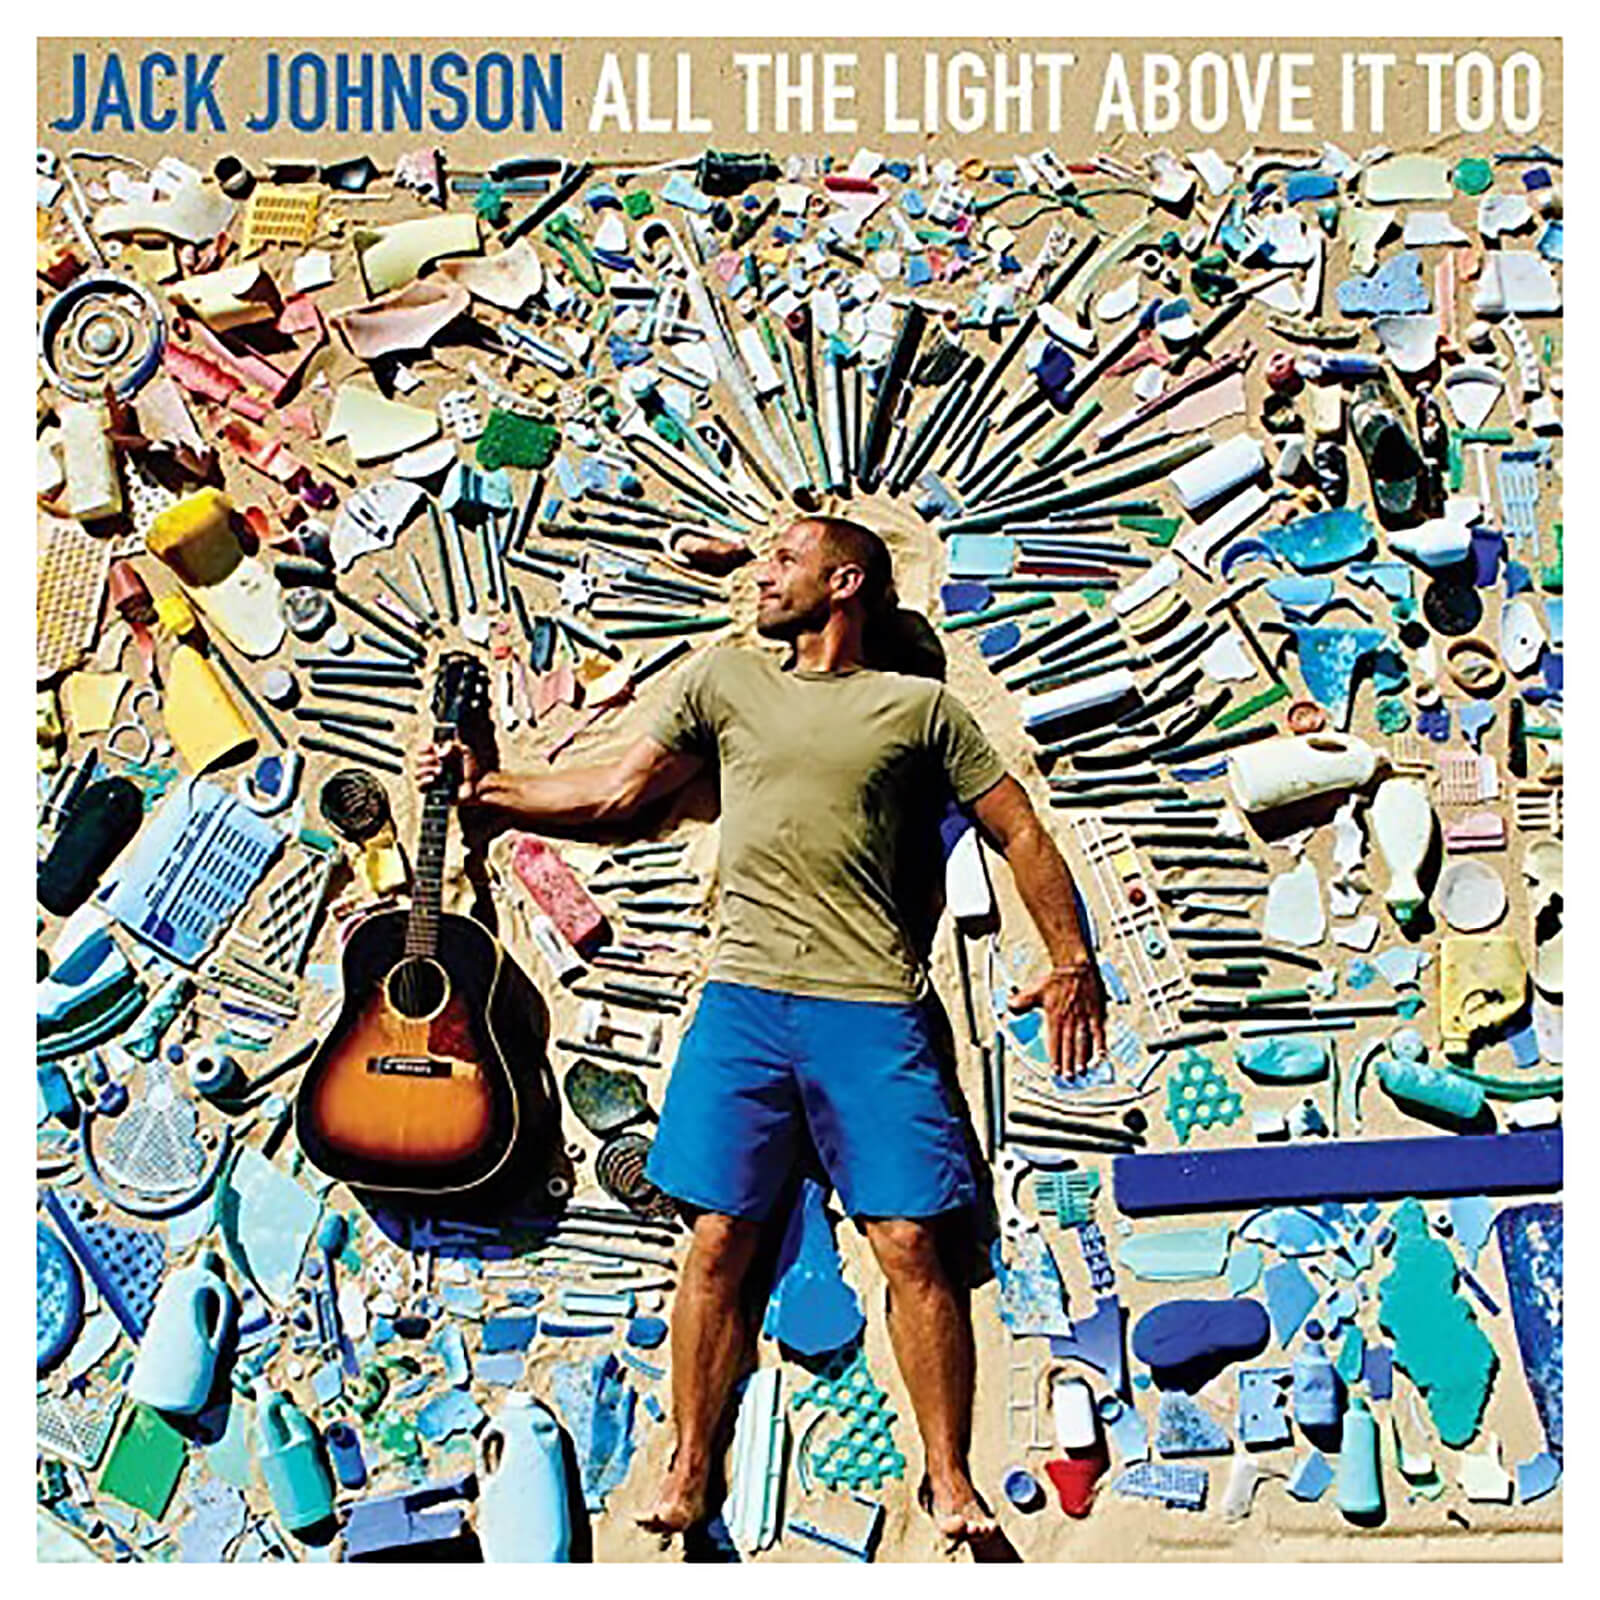 Jack Johnson - All The Light Above It Too - Vinyl